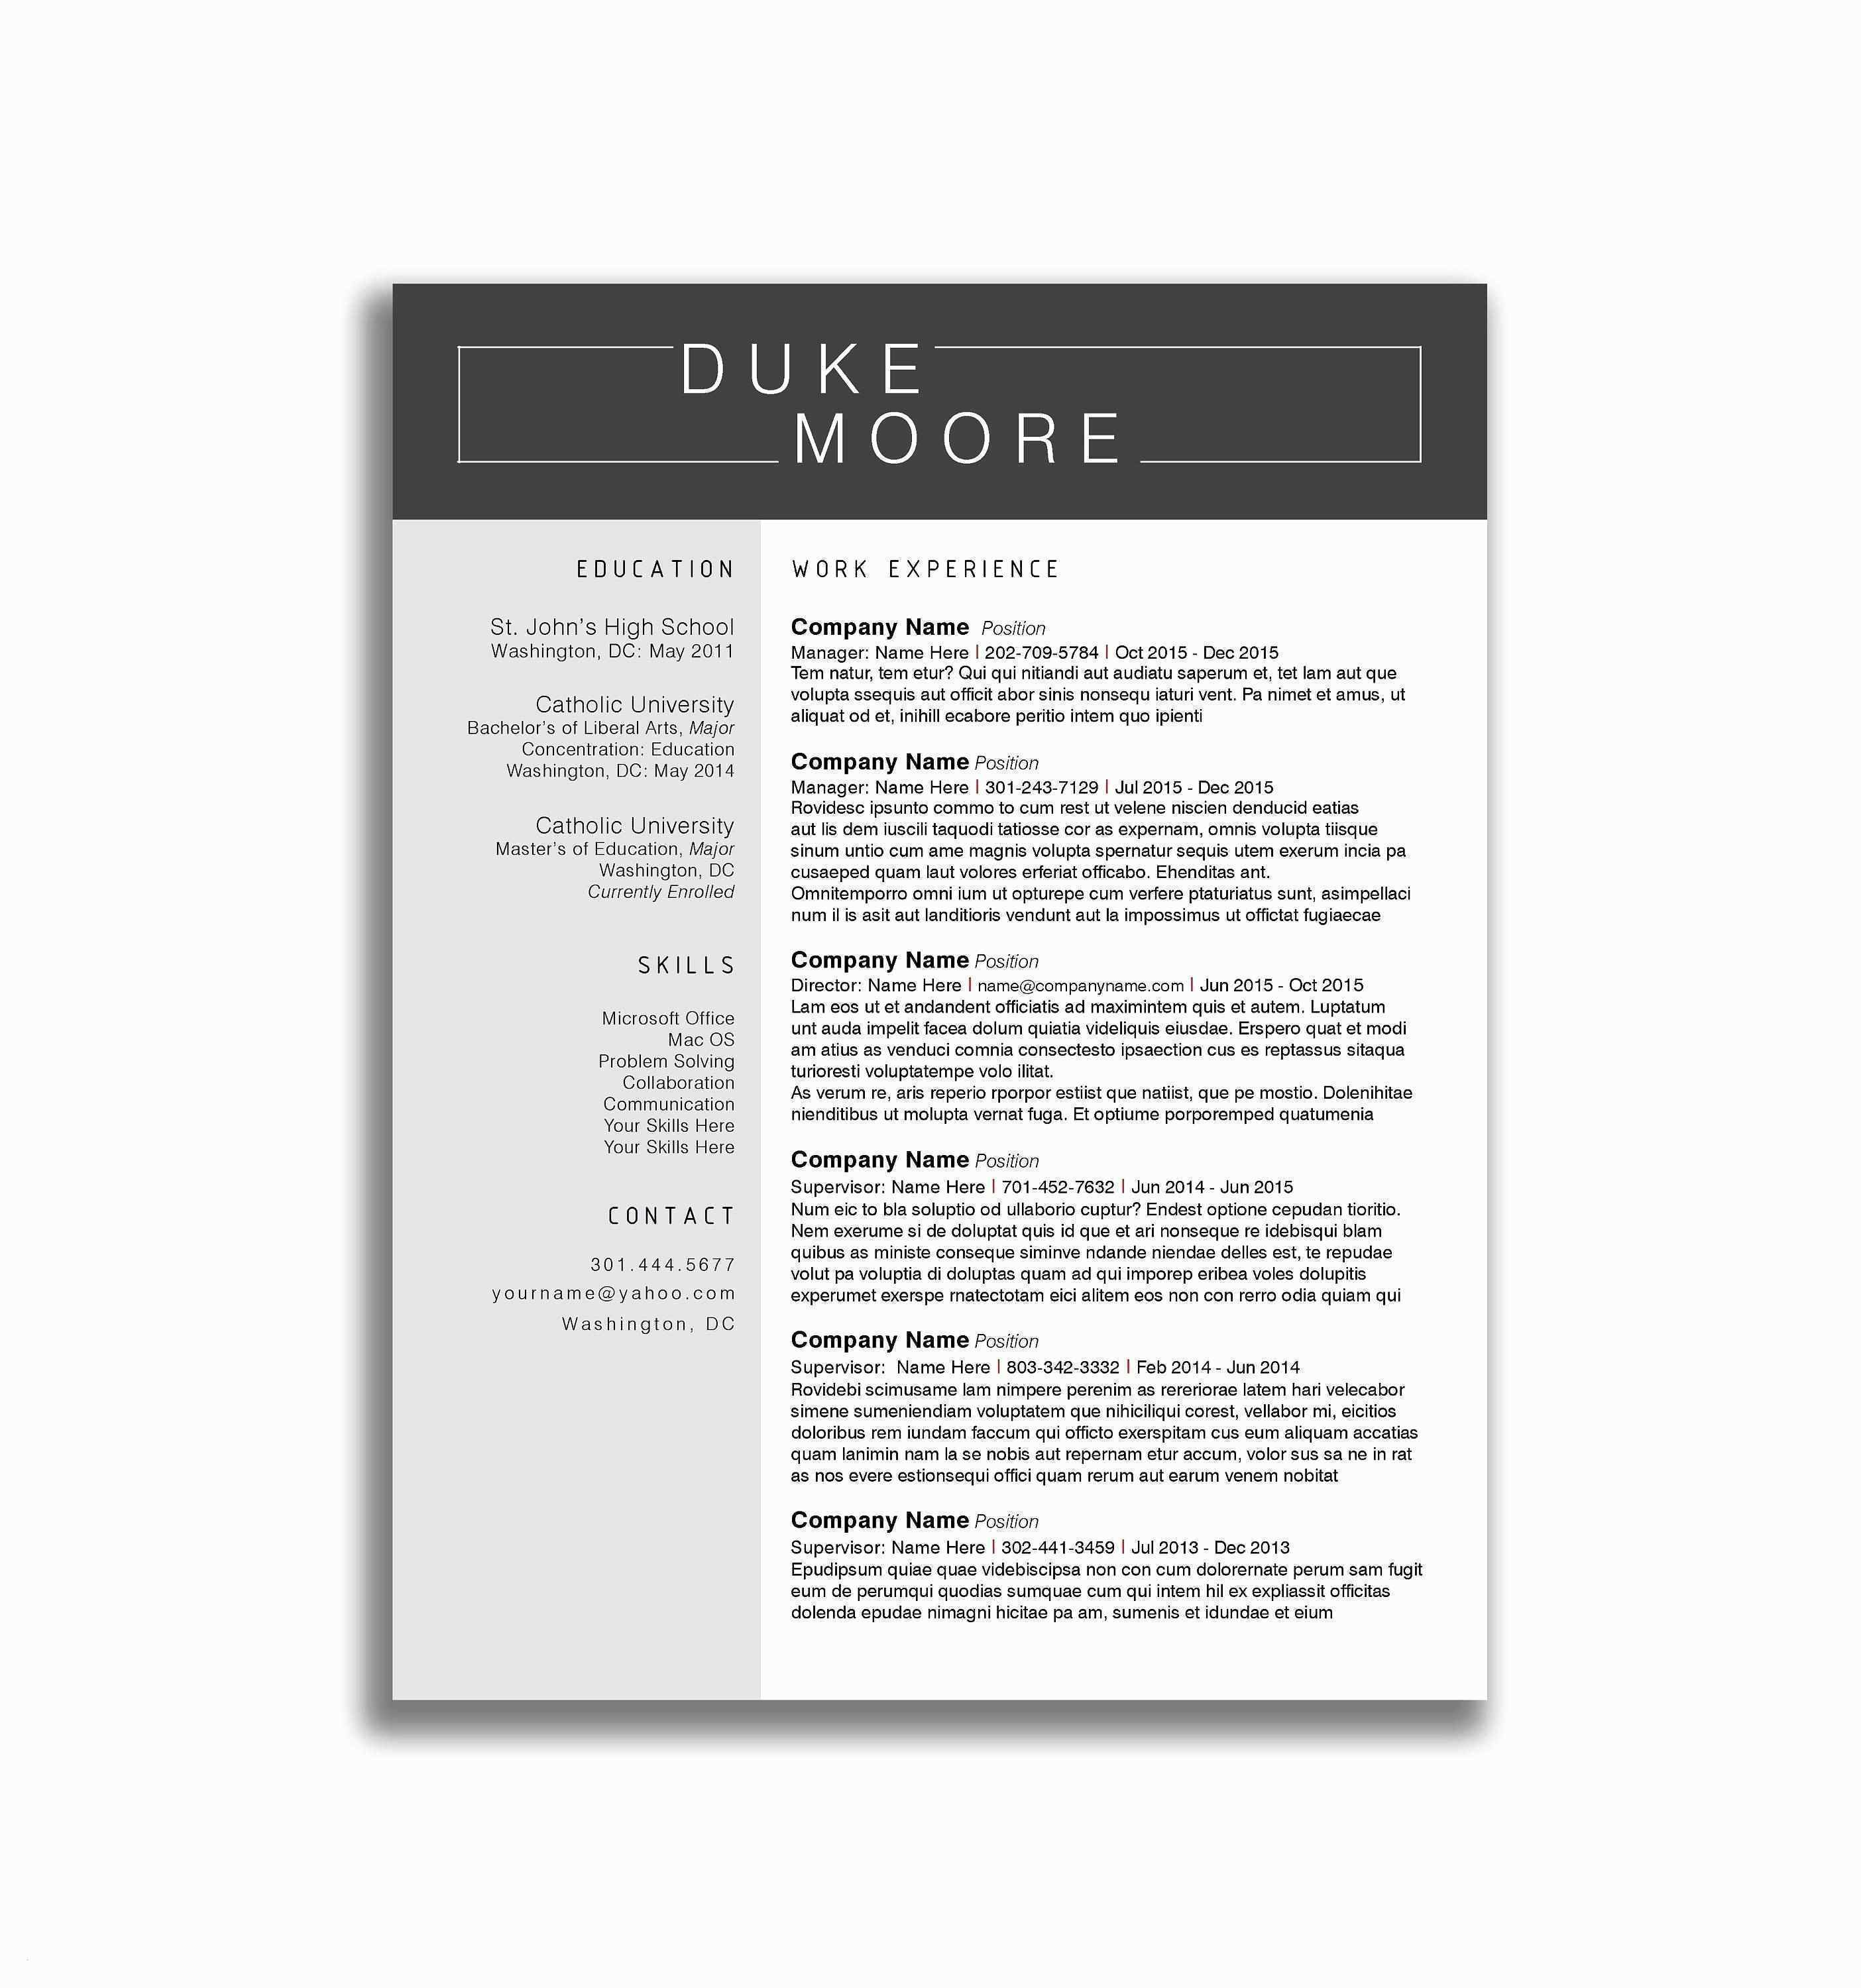 Editor Resume Sample - Editor Resume Sample Luxury Magazine Editor Resume Sample